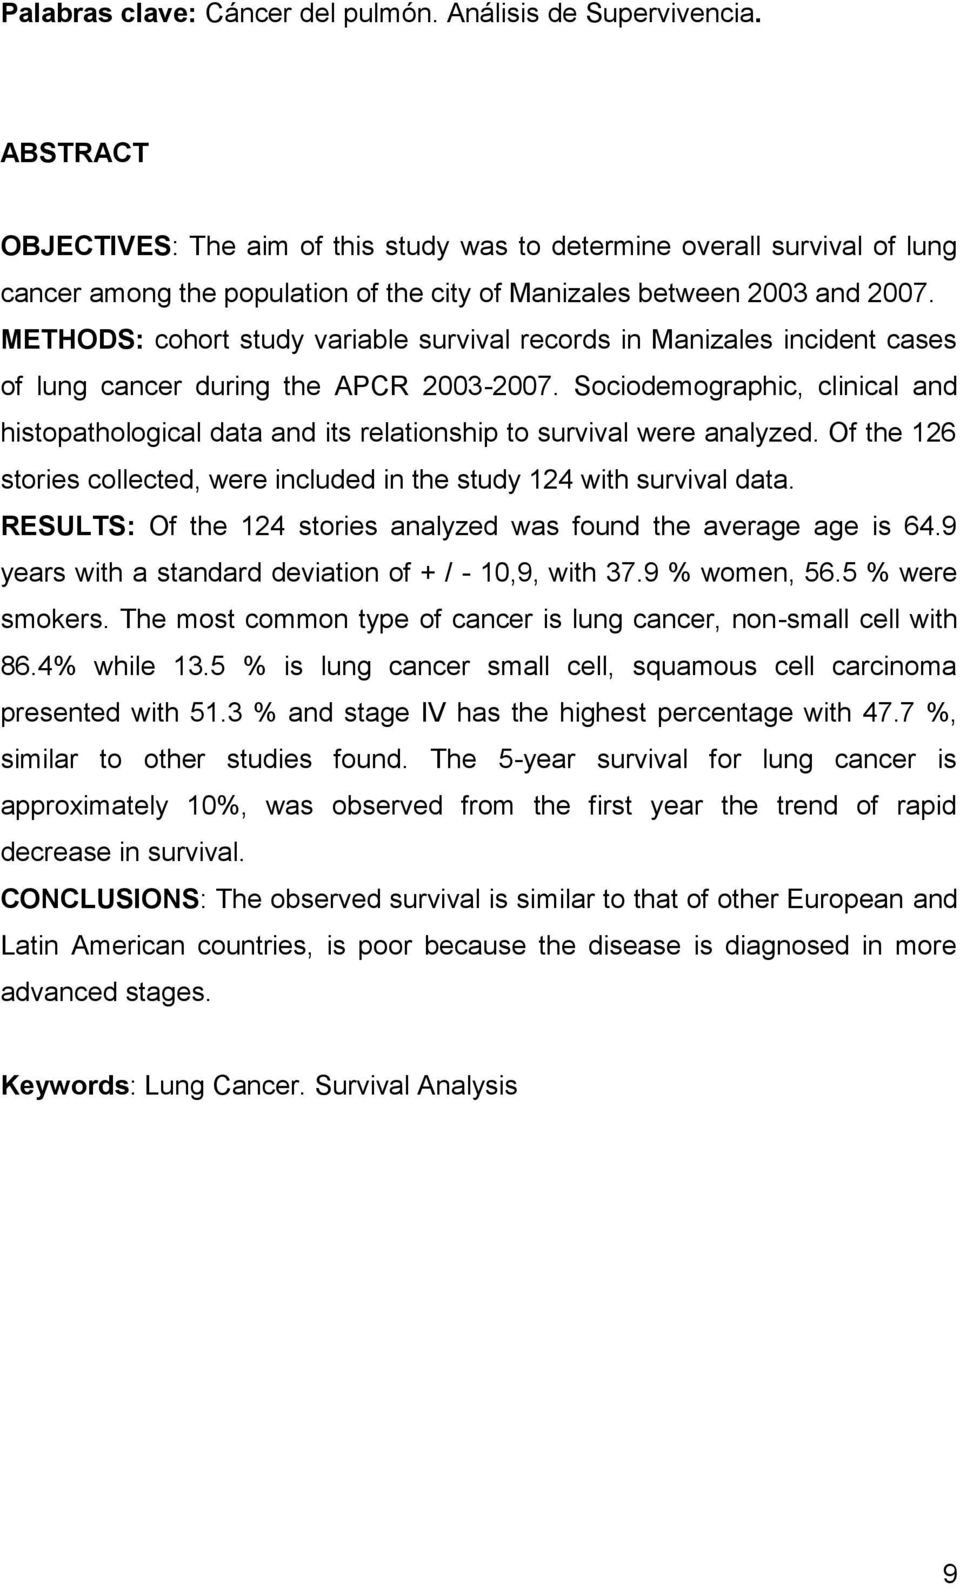 METHODS: cohort study variable survival records in Manizales incident cases of lung cancer during the APCR 2003-2007.